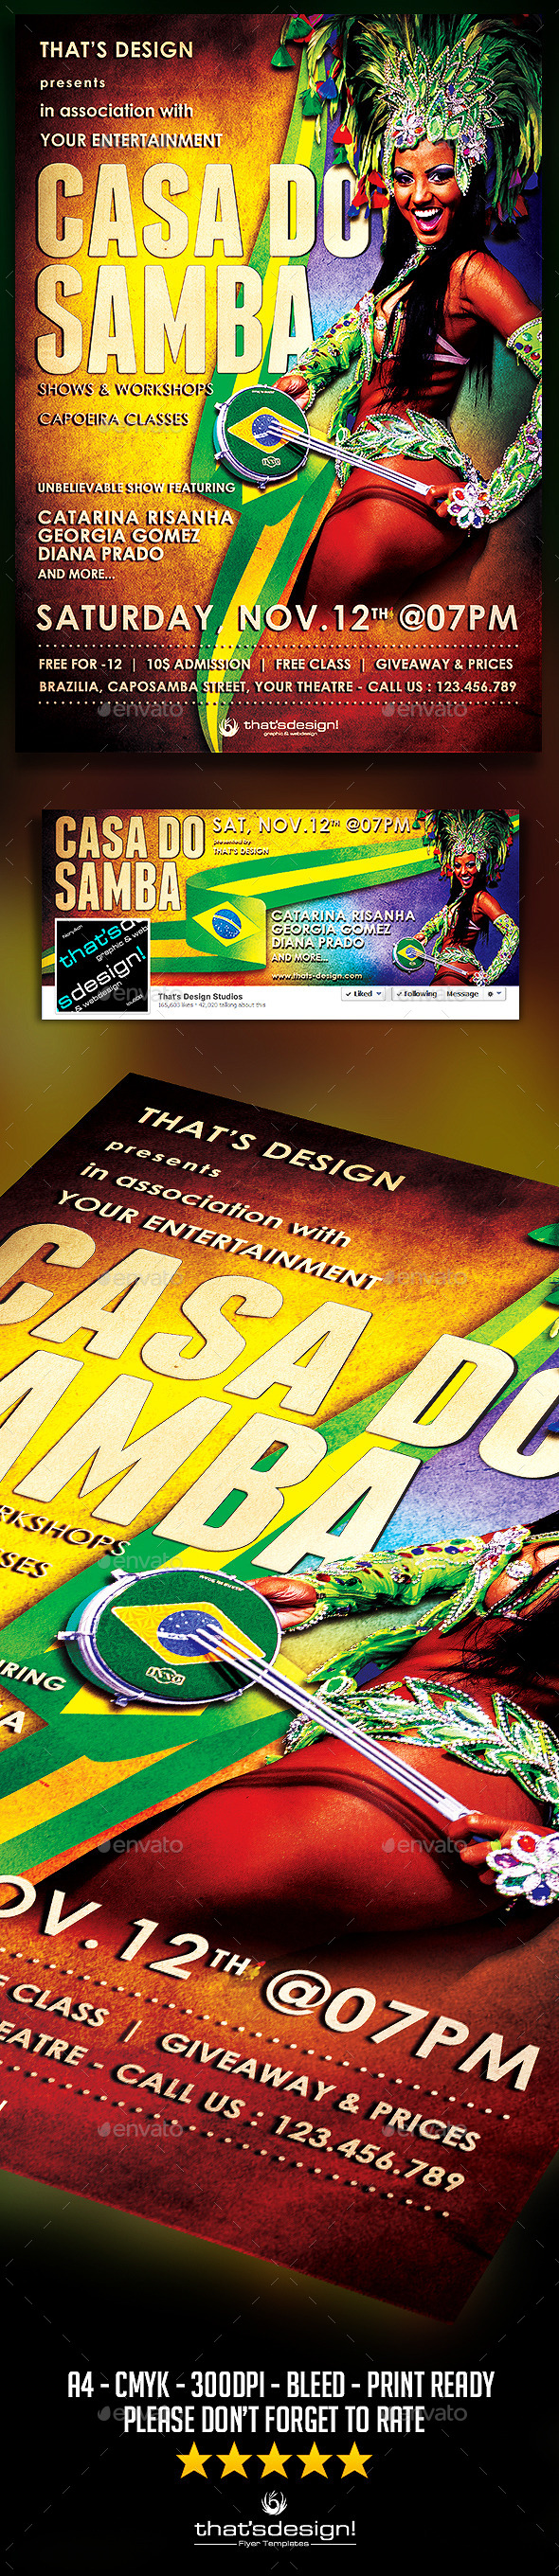 Samba Flyer Template - Clubs & Parties Events